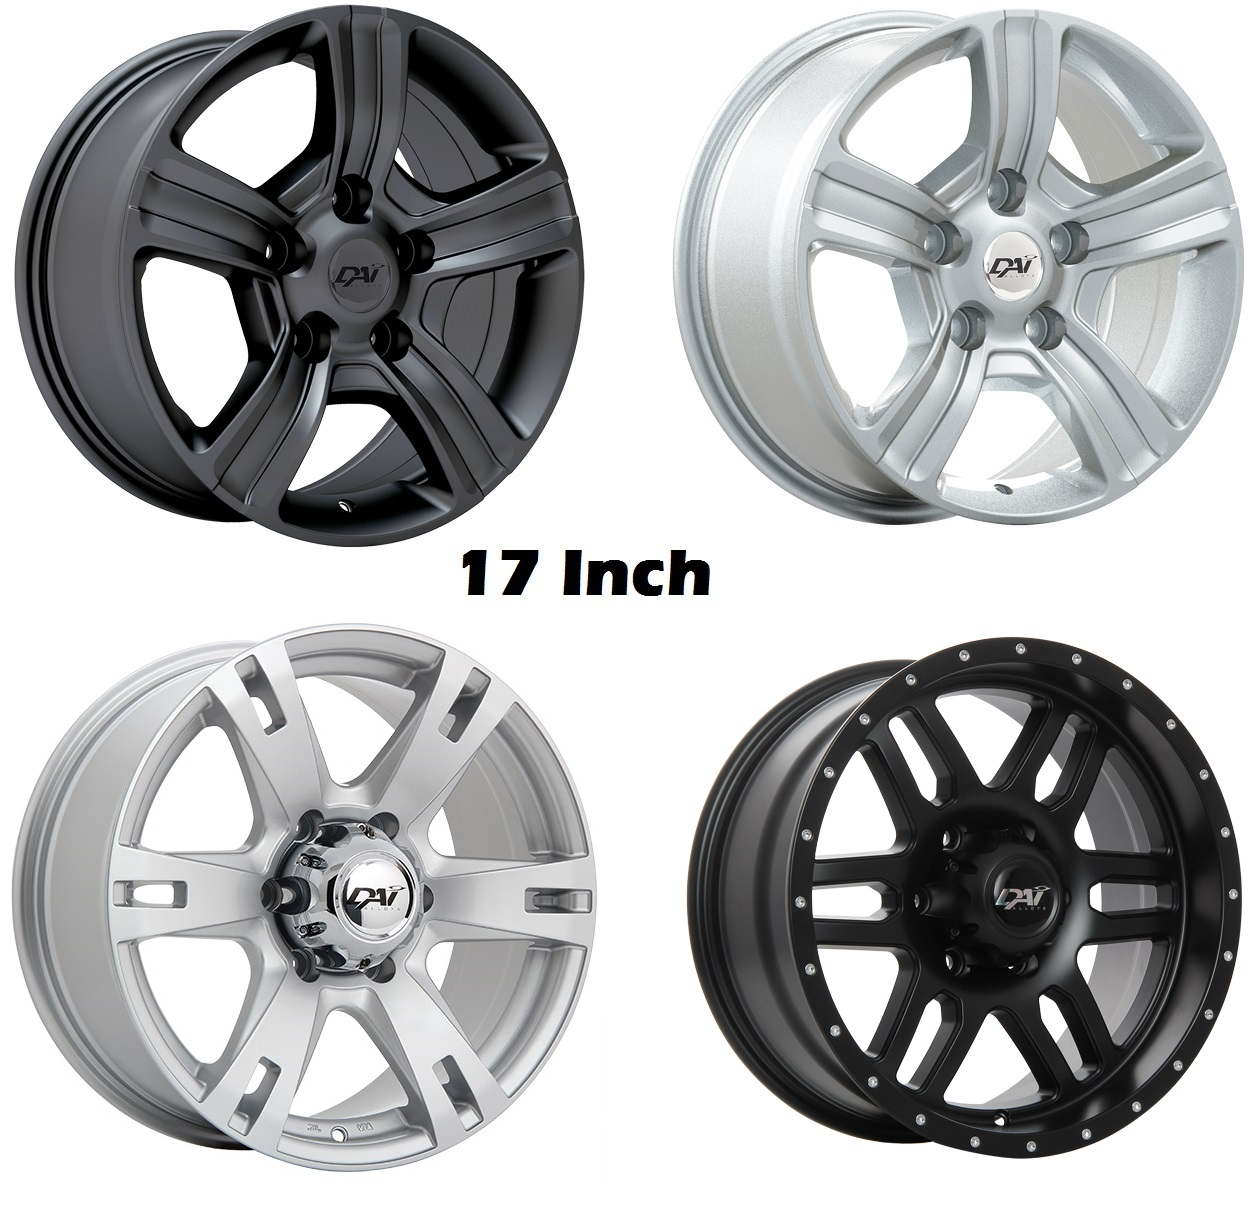 Ford F150 Winter Tires Rim Package 17 18 20 Inch . PH 9056732828 wheels